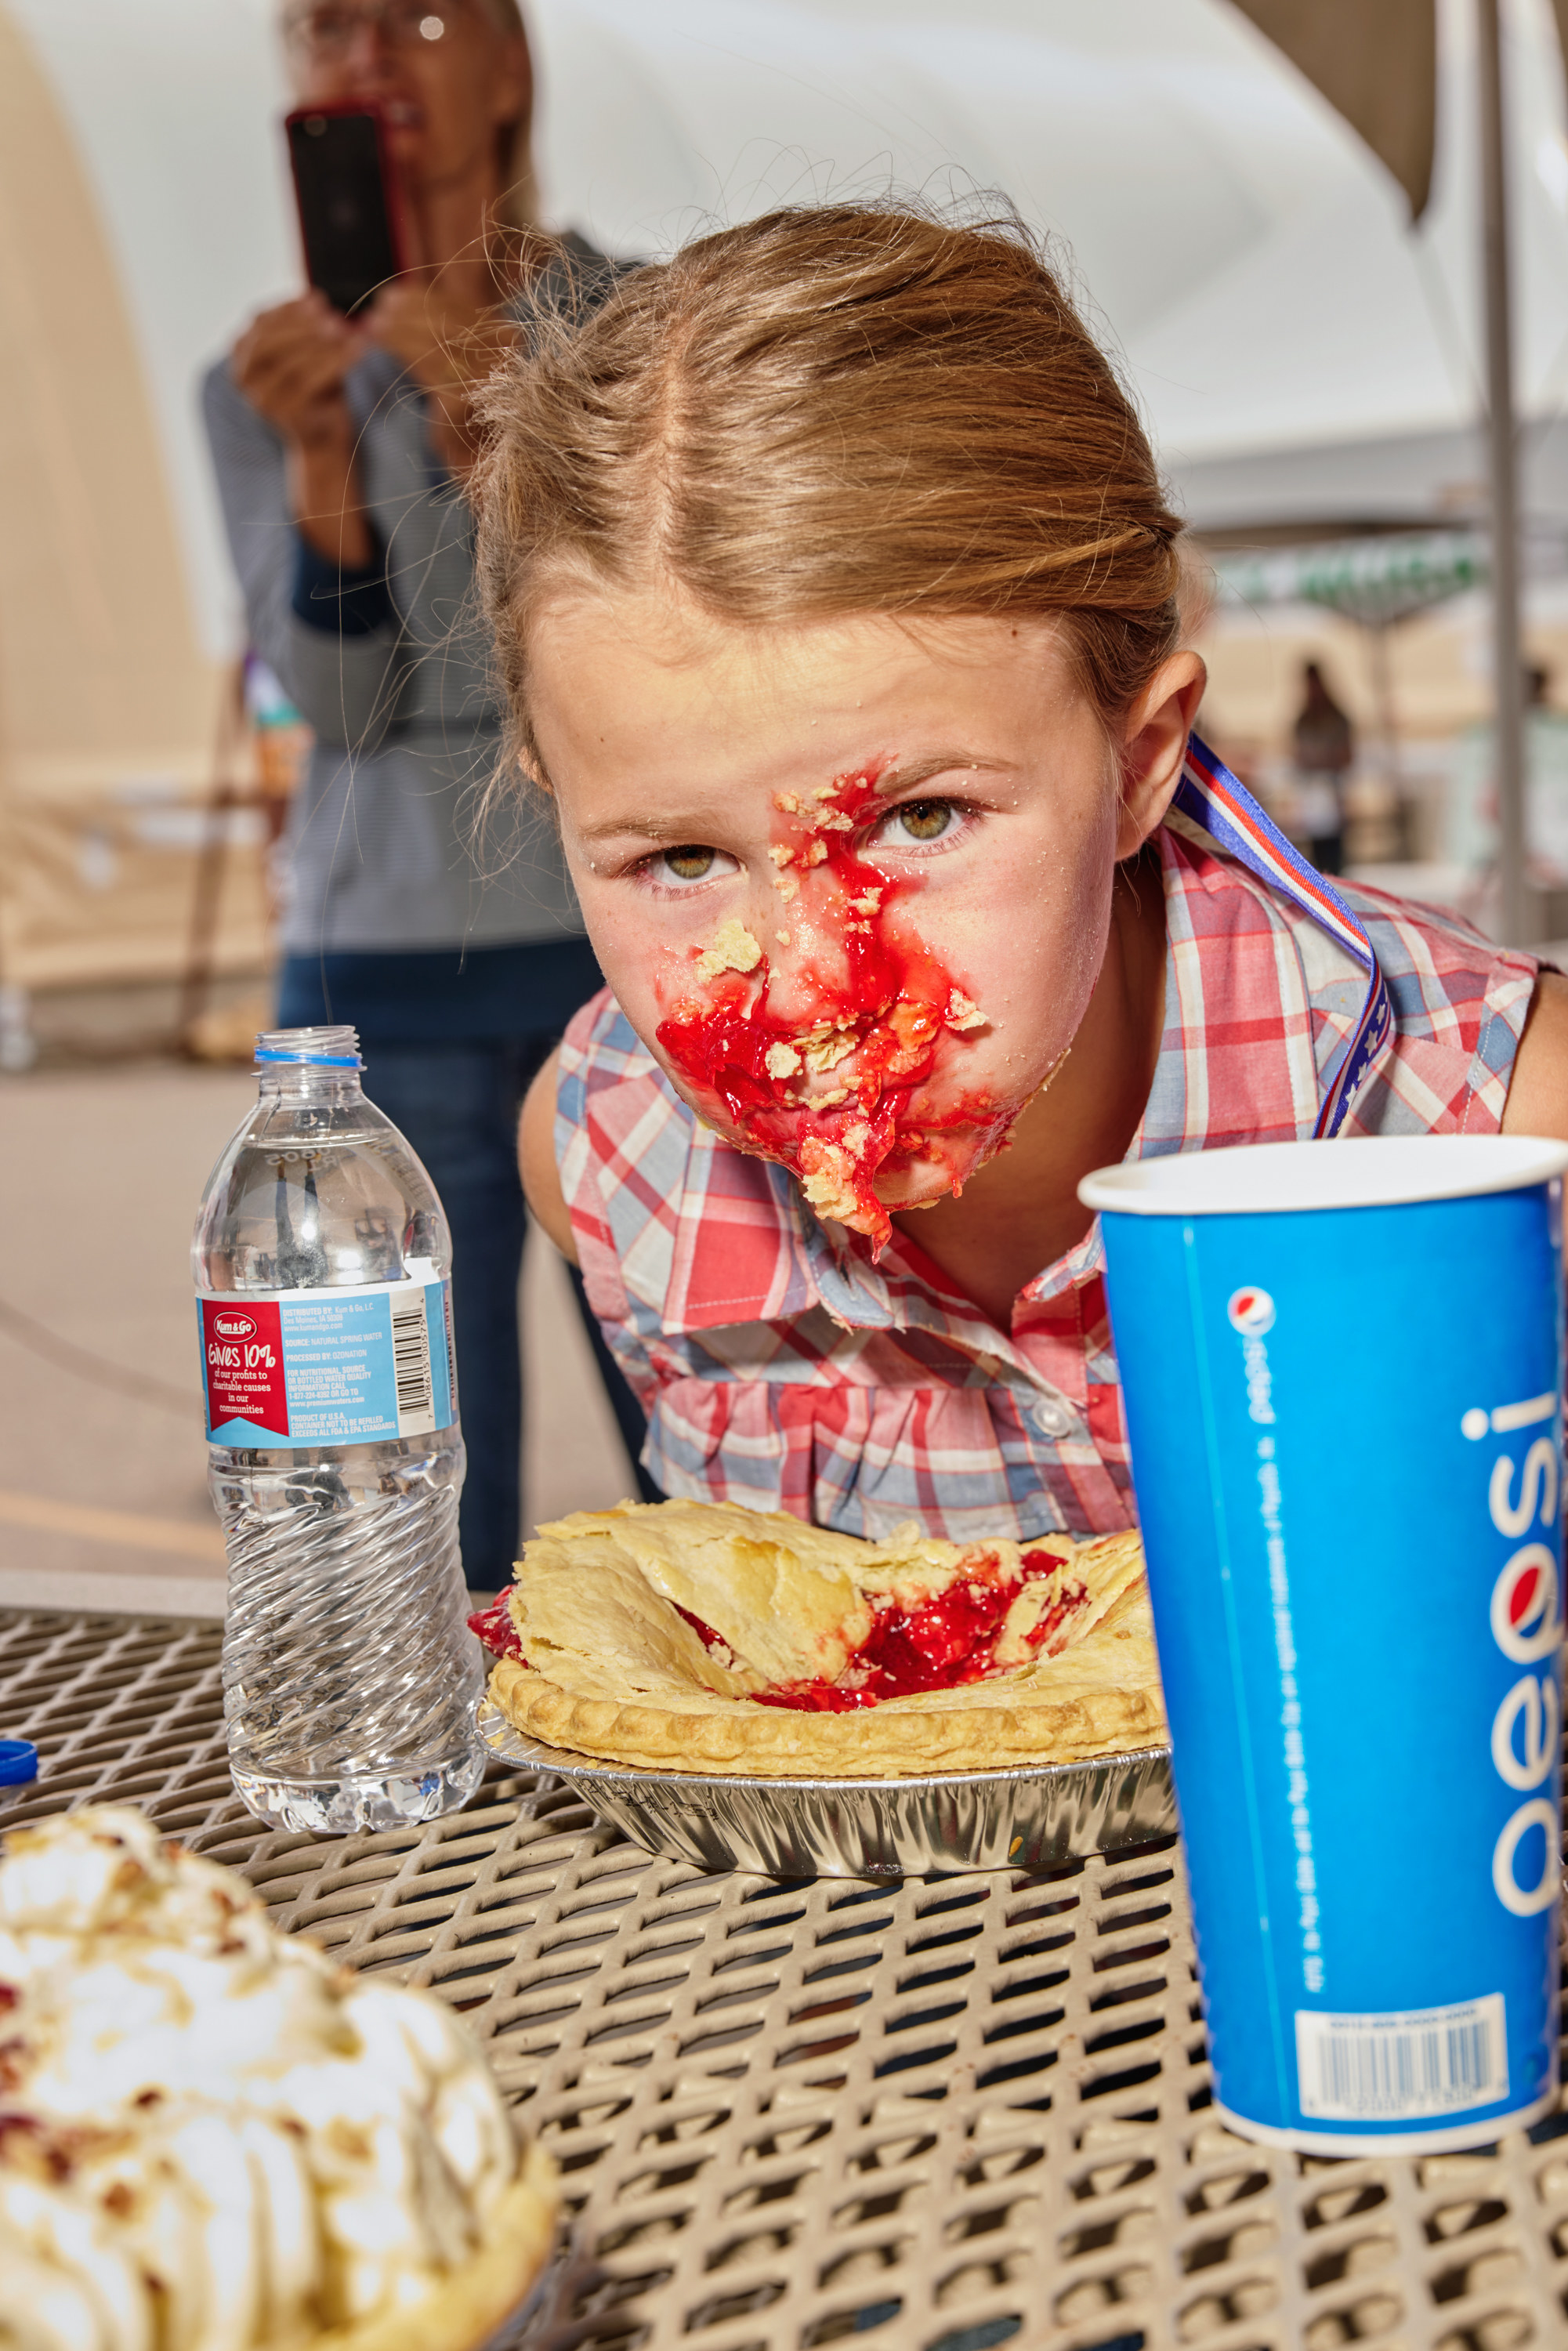 A girl lifts her face up from a pie, with pie filling all over her face, and a bottle of water to her left